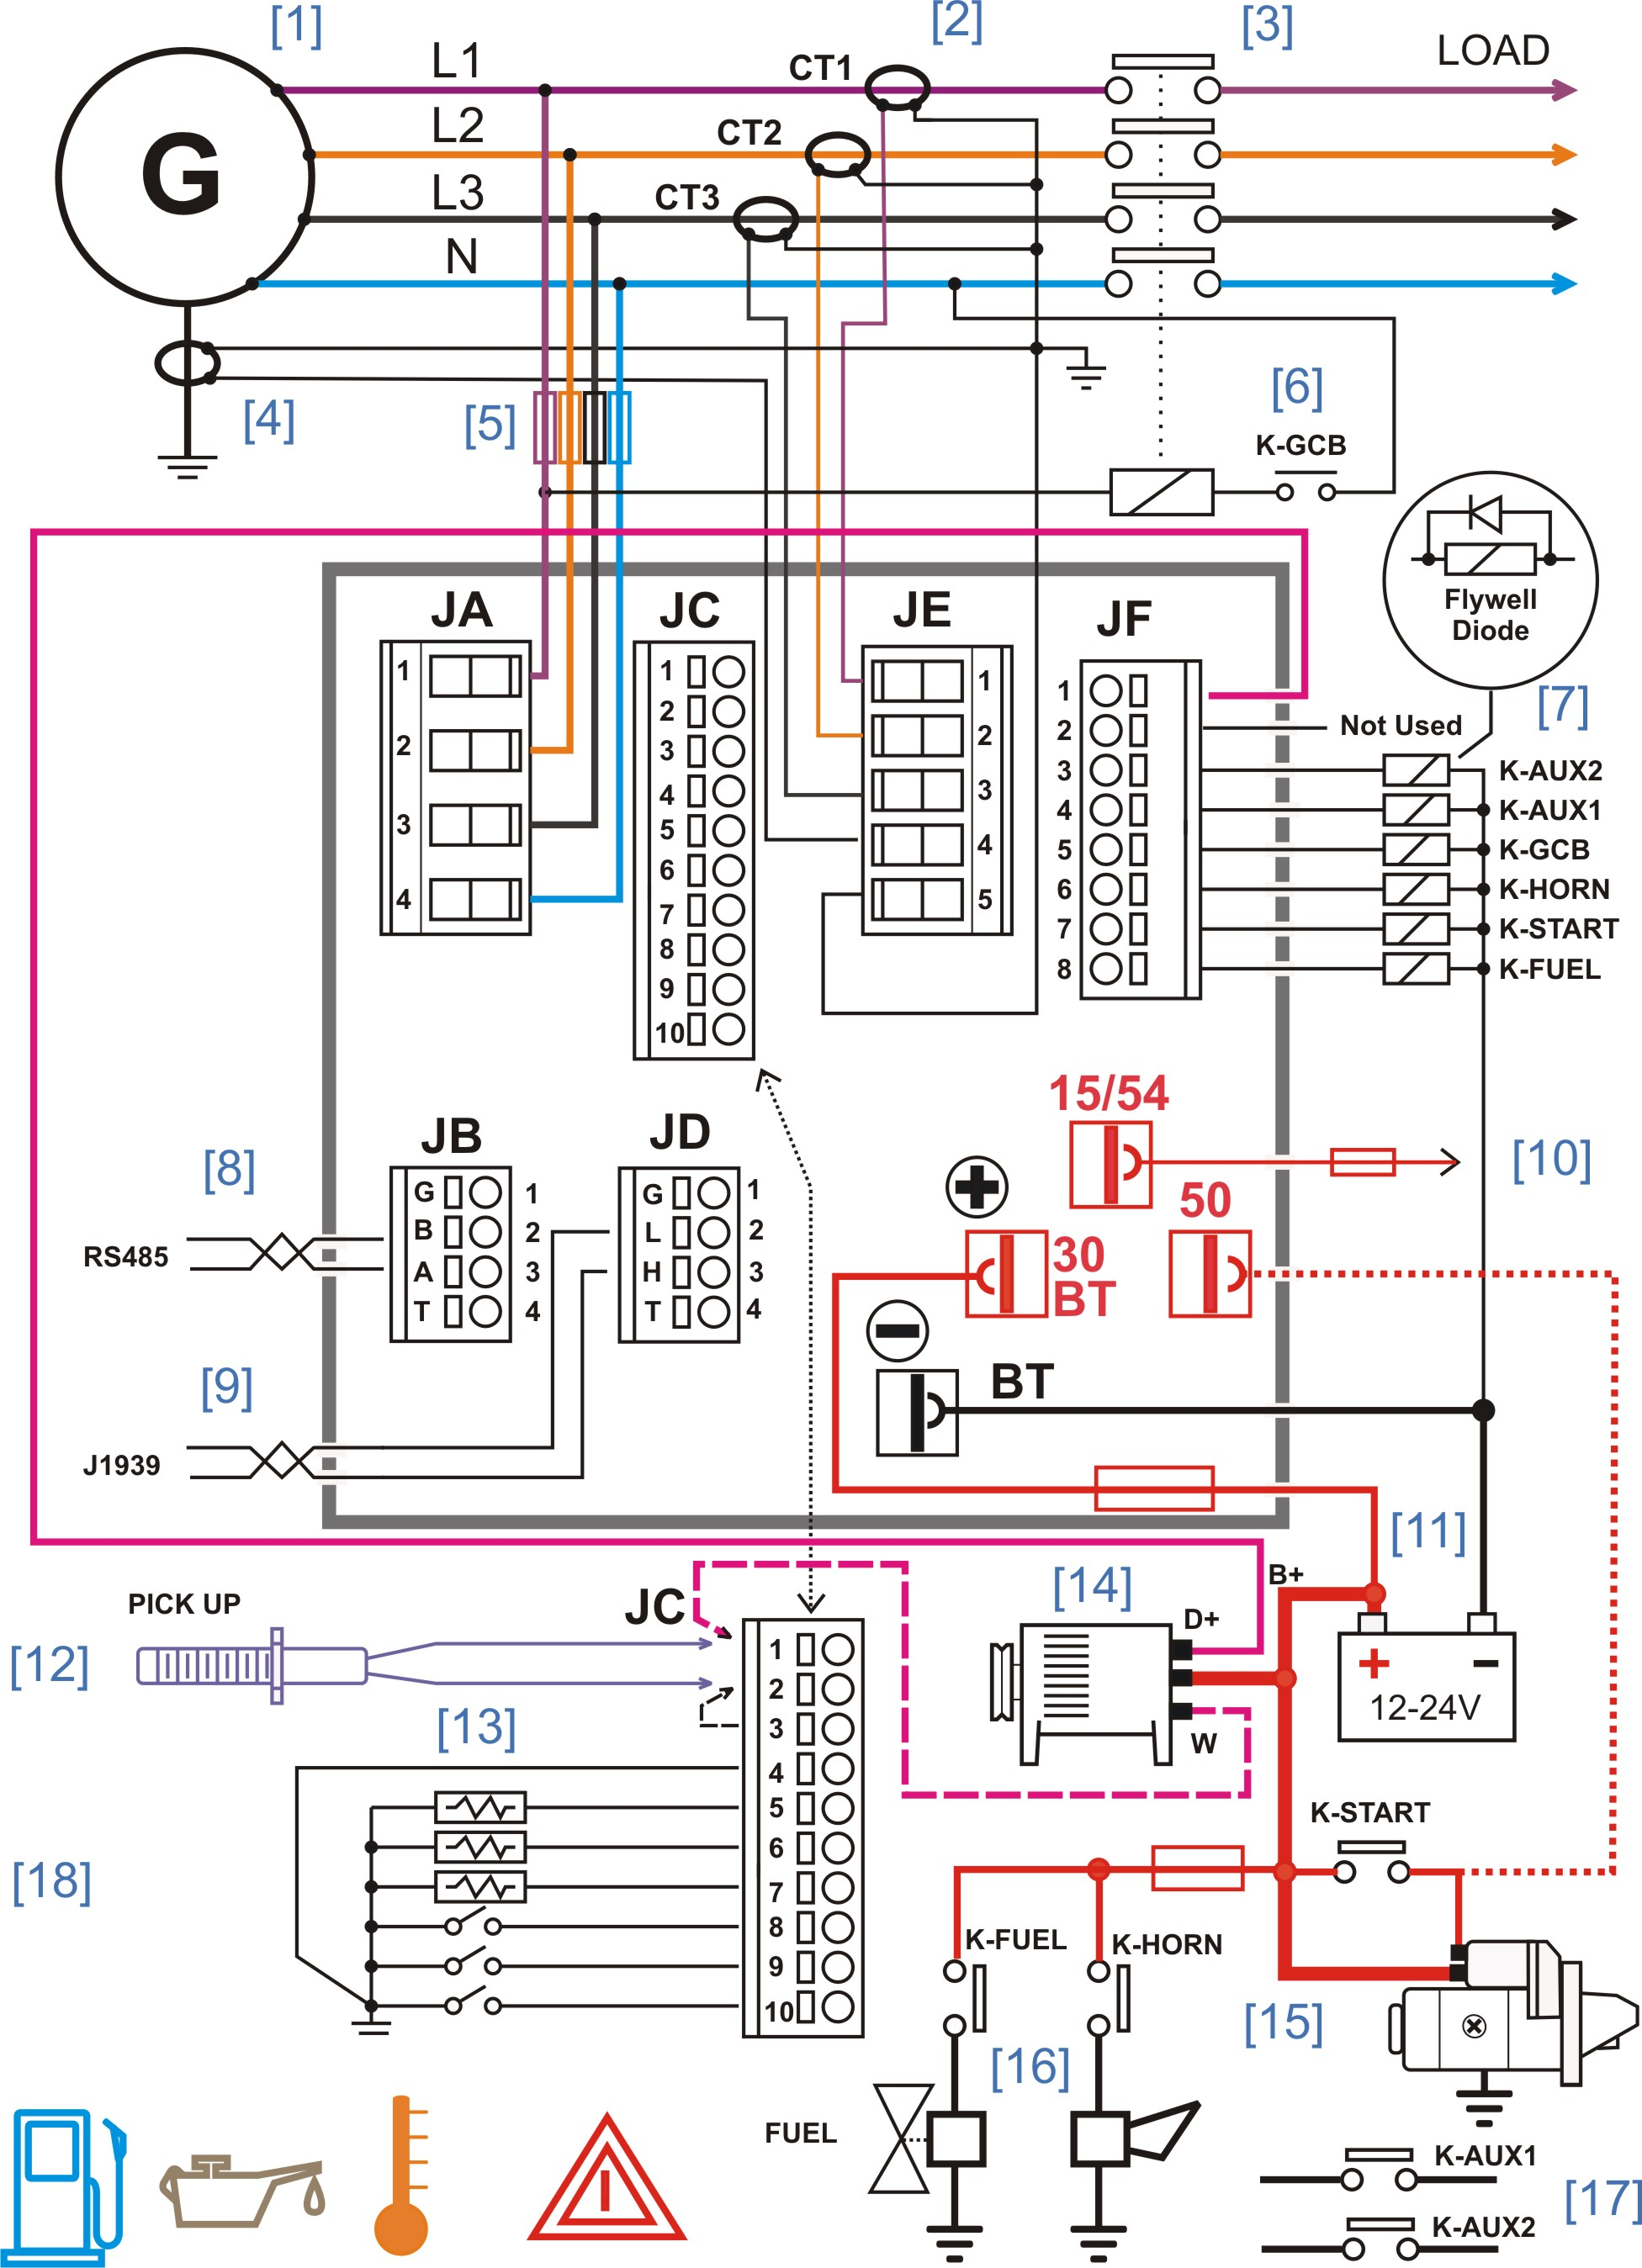 generator wire diagram data wiring diagram updategenerator controller wiring diagram generator controller manufacturers generator wire diagram switch generator controller wiring diagram